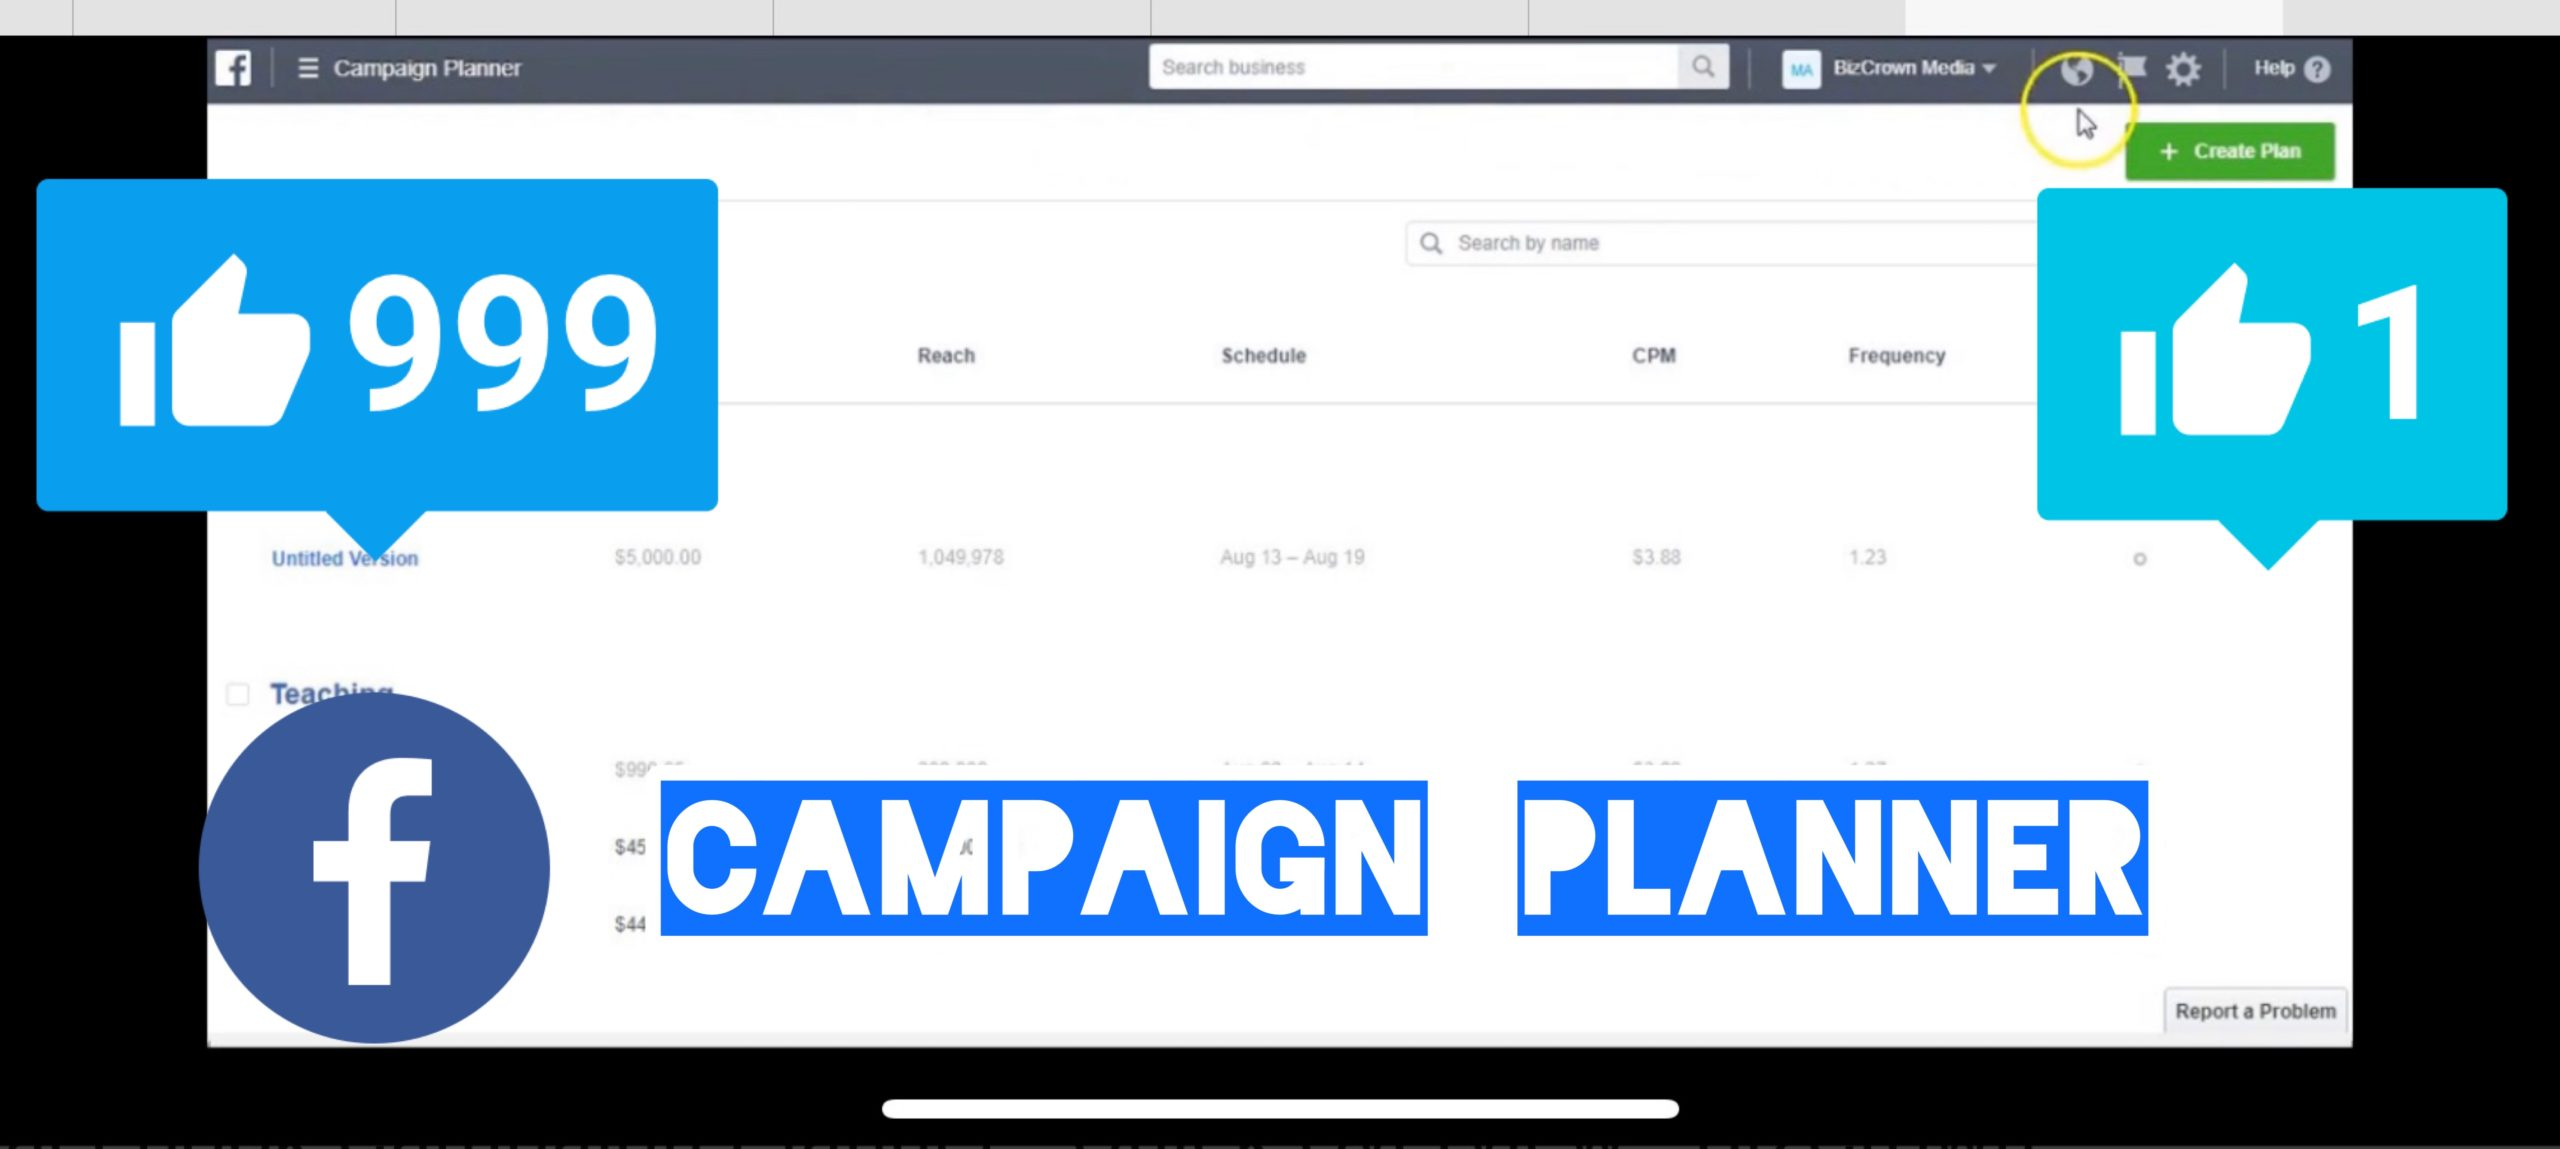 Facebook Campaign Planner Overview Bizcrown